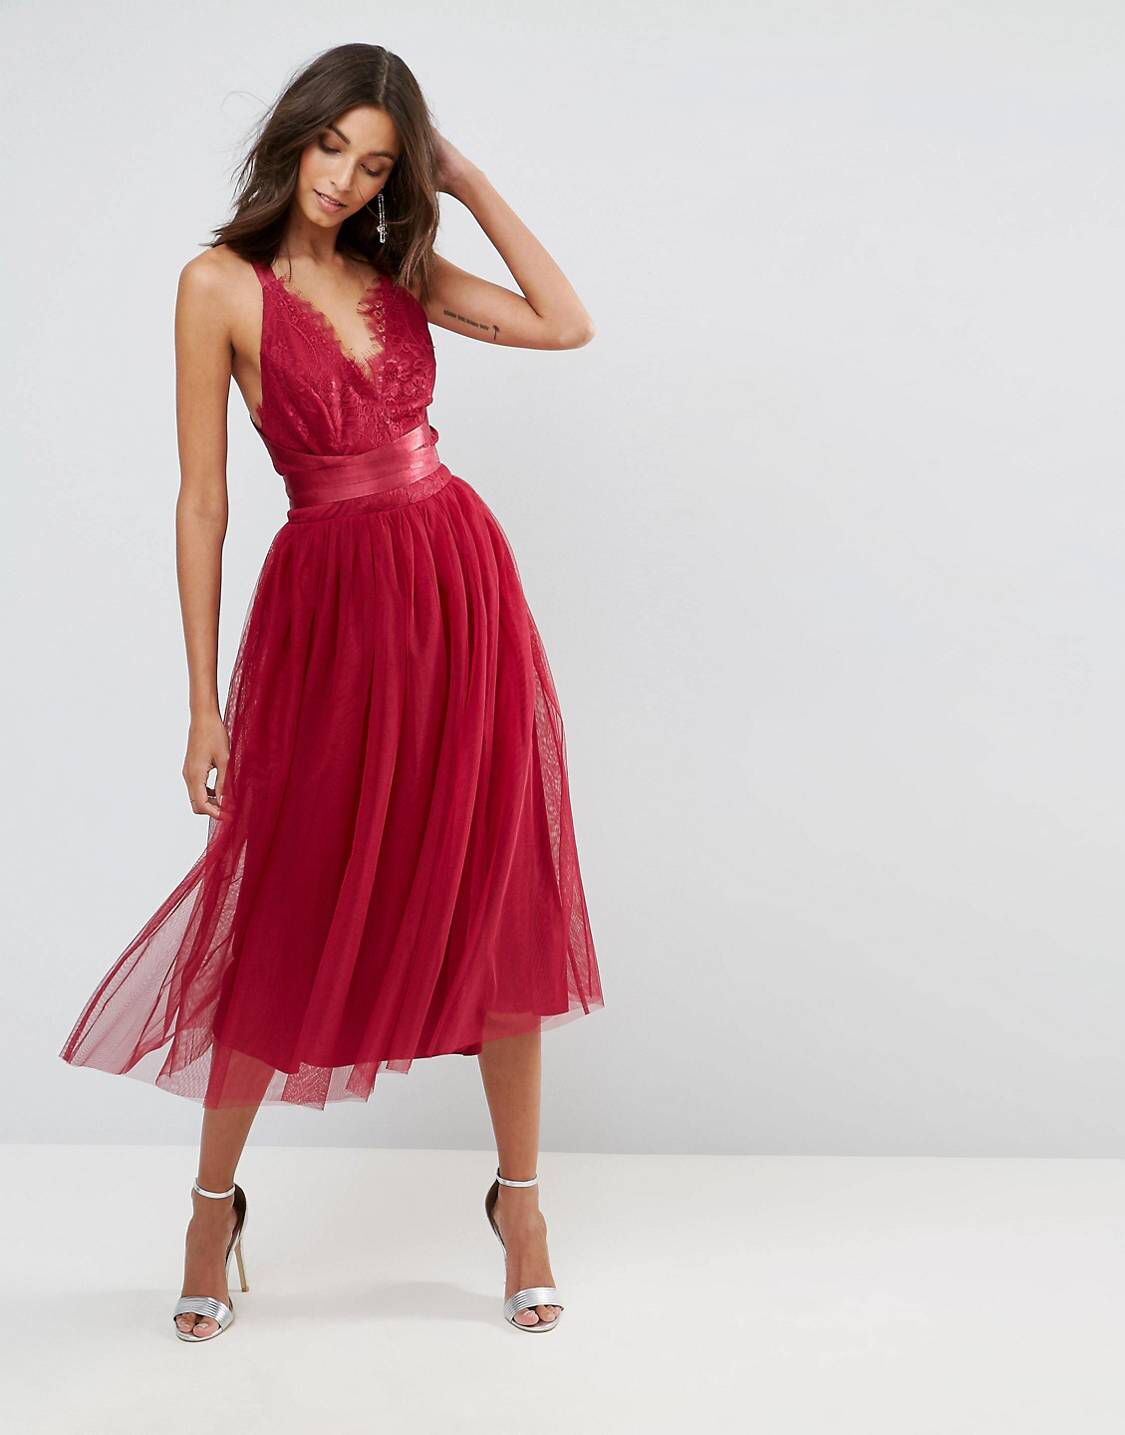 TALL PREMIUM Lace Top Tulle Midi Prom Dress with Ribbon Ties